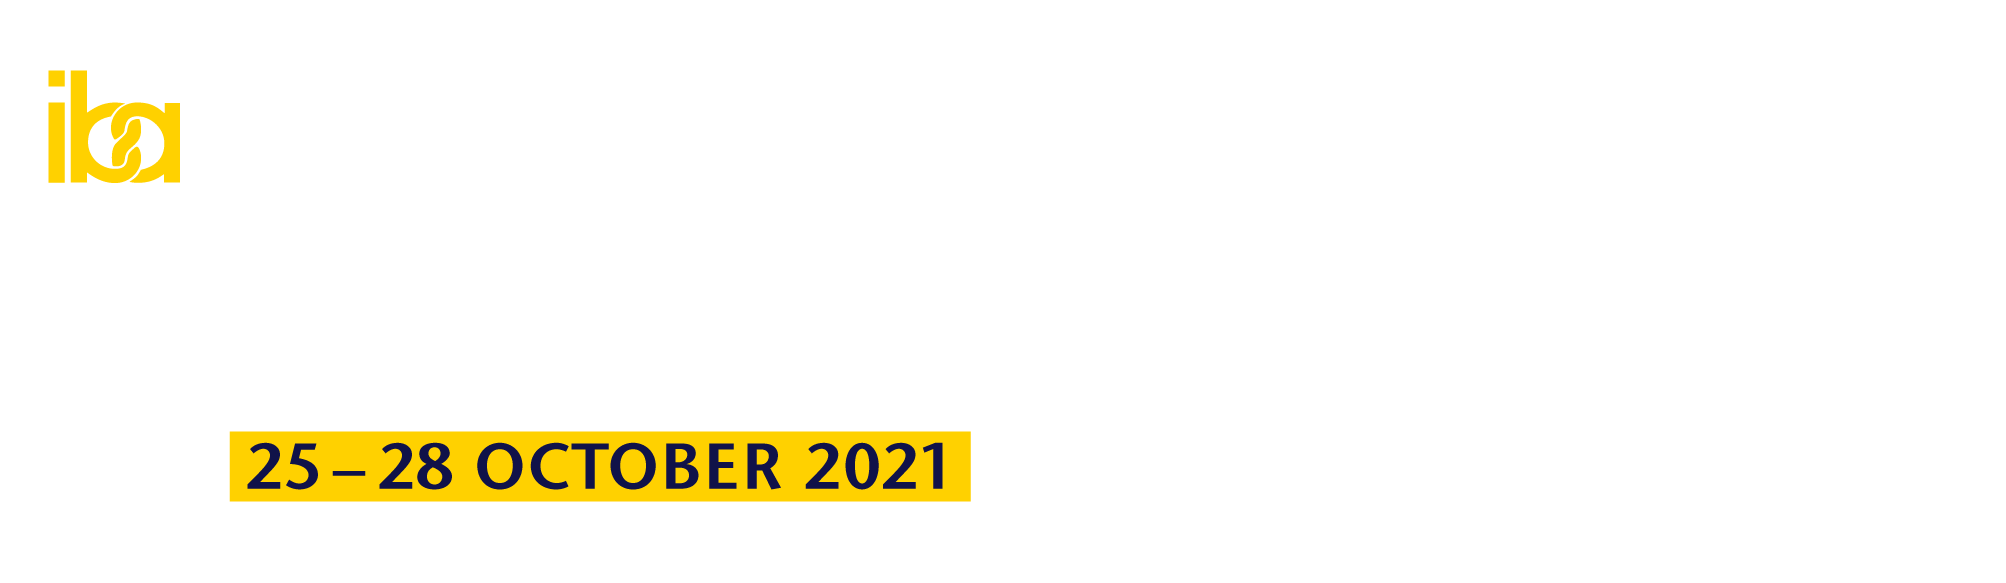 iba Connecting Experts - Your global business platform - endlessly interactive: 01.-03.02.2021